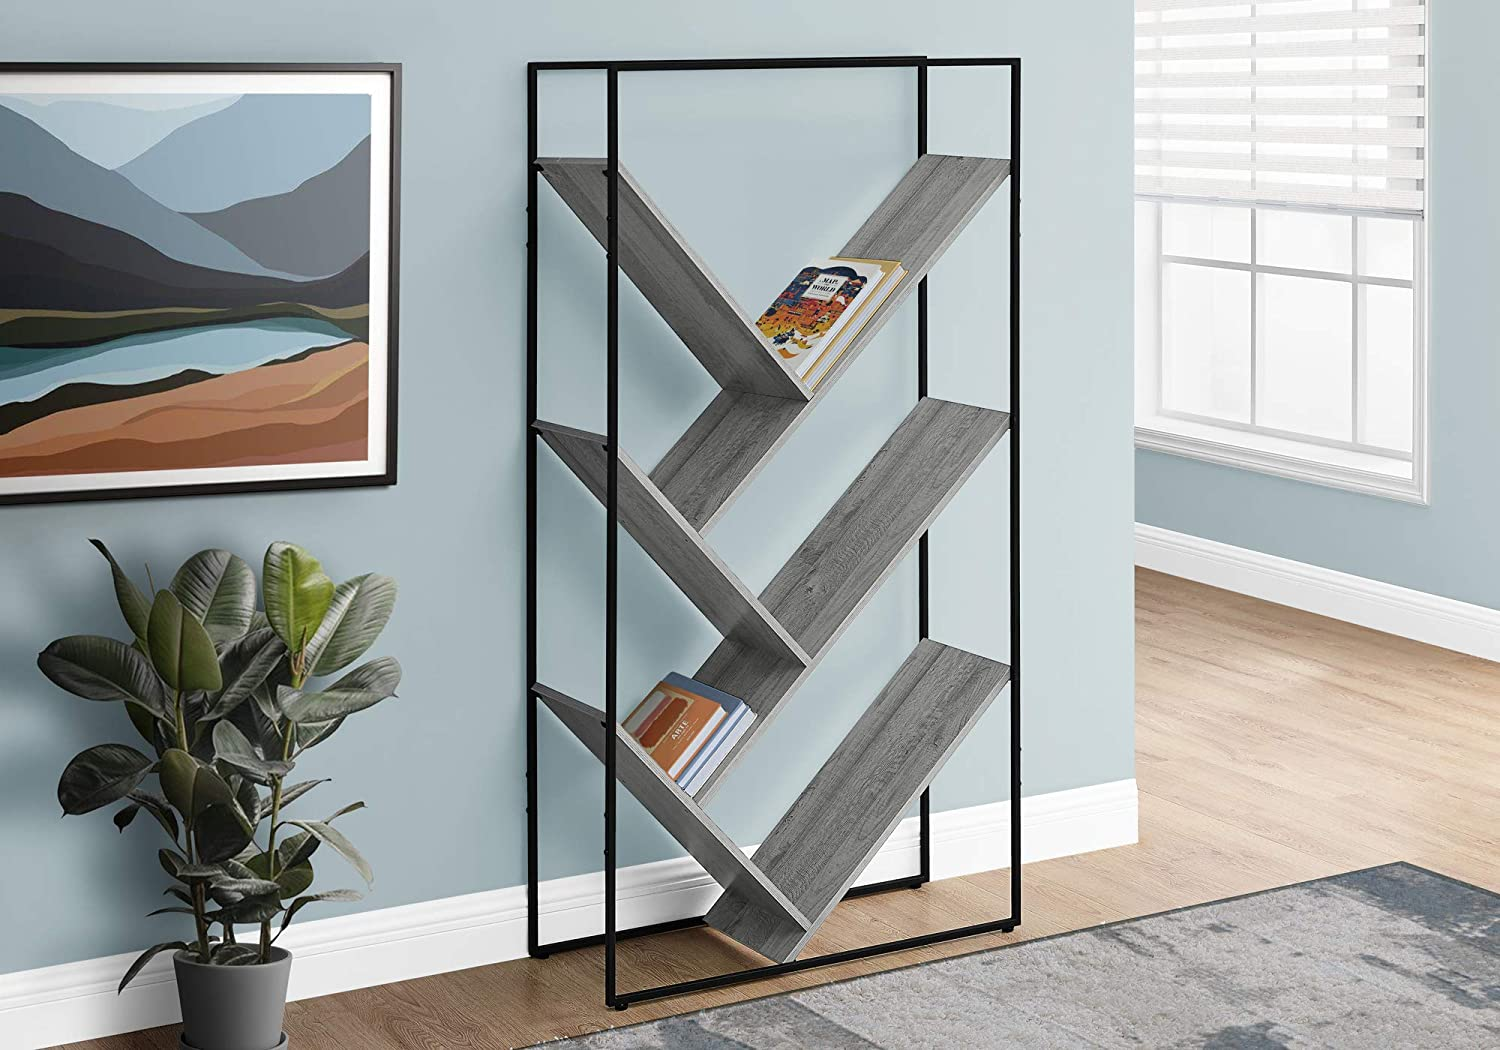 Living Room Furniture Monarch Specialties I 2200 Bookshelf Etagere With 5 Tier Open Shelves V Shaped Storage Grey Narrow Tall For Living Room Office Or Bedroom Bookcase 60 H Home Elektroelement Com Mk